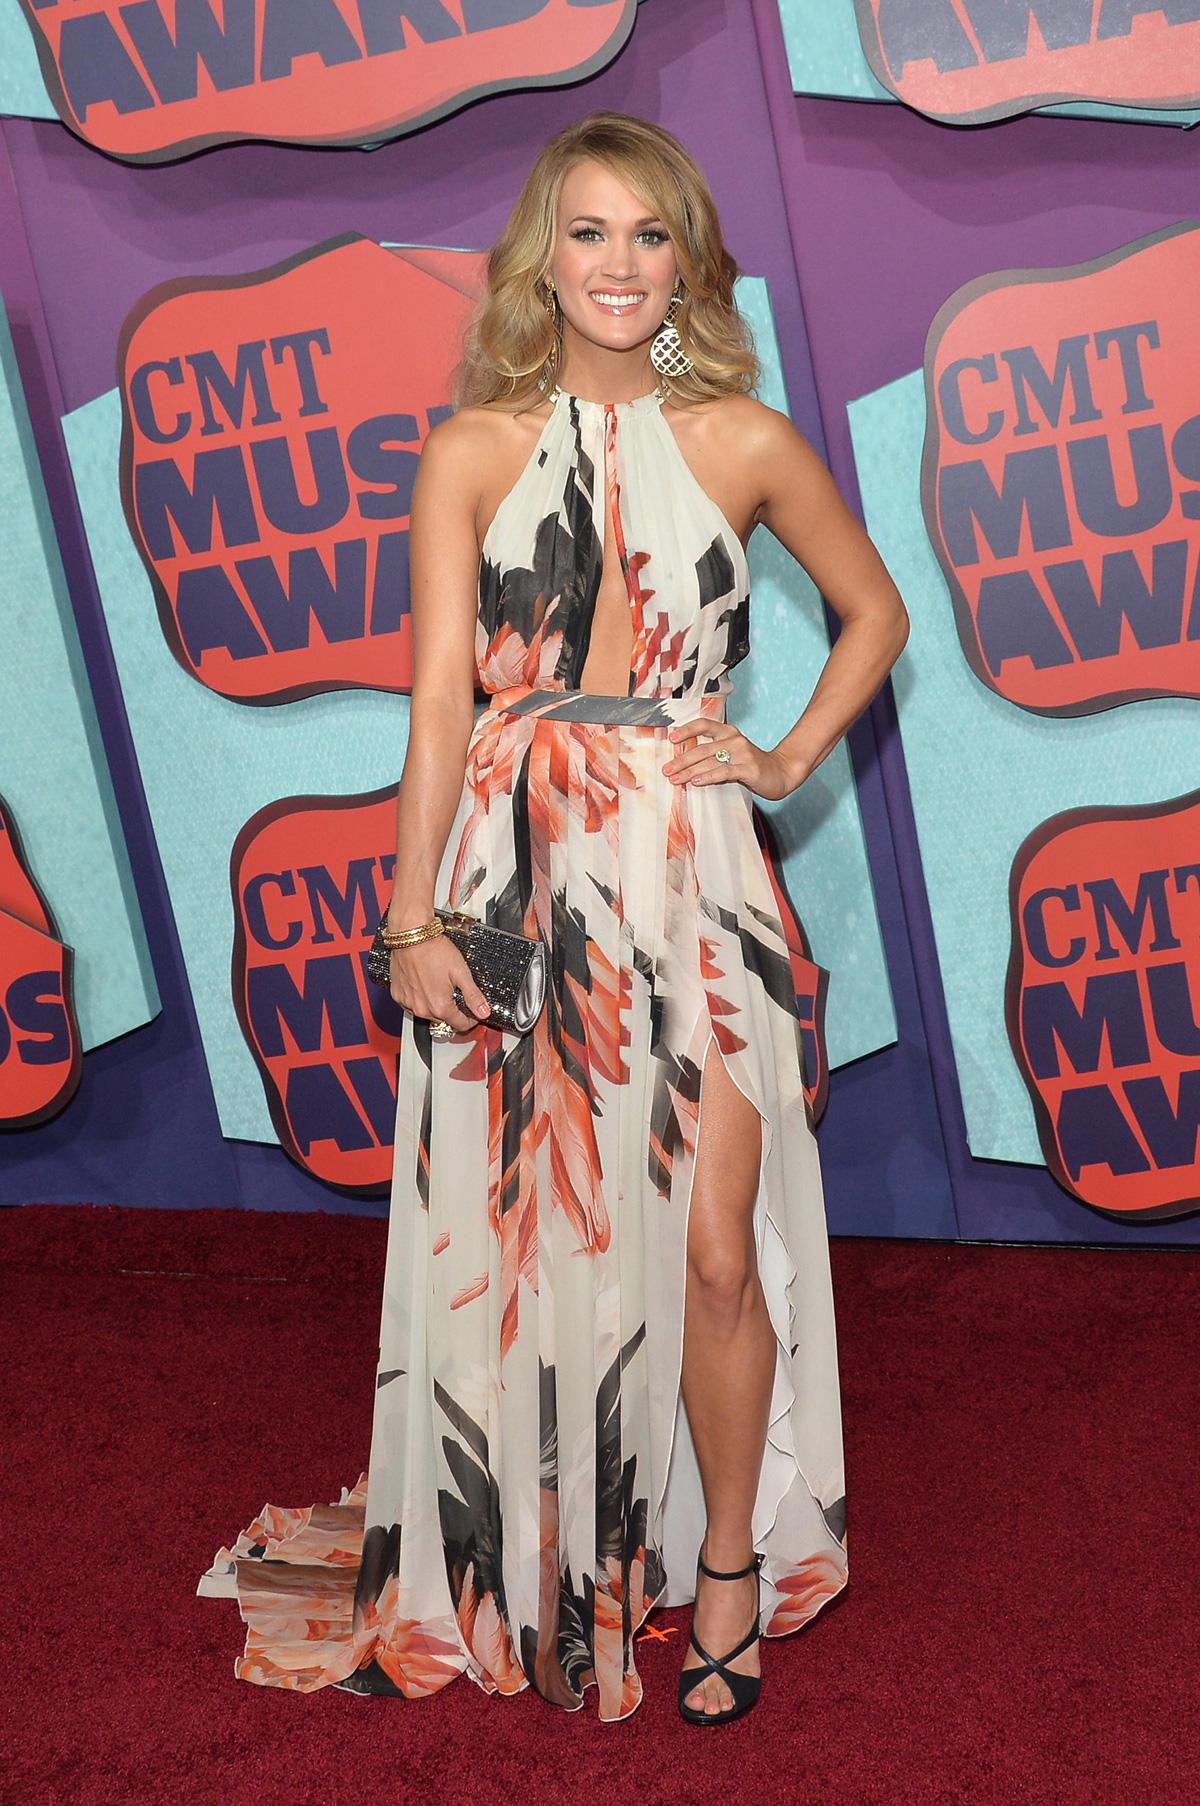 Carrie Underwoodat the the 2014 CMT Music Awards